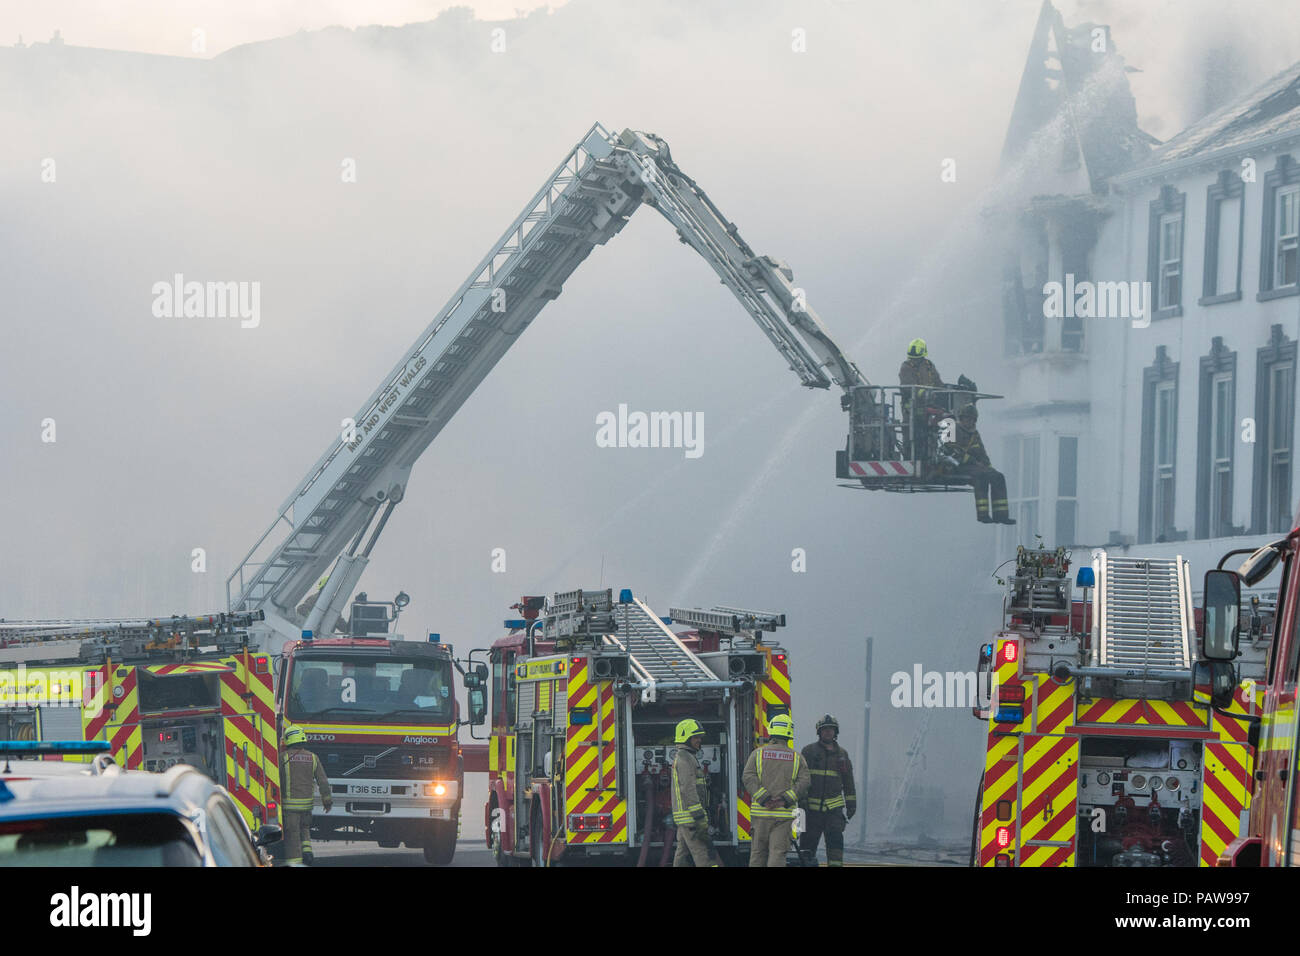 Aberystwyth Wales UK, Wednesday 25 July 2018  A major fire has severely damaged two adjoining hotels on Aberystwyth seafront. The Belle Vue hotel and the Belgrave House Hotel caught fire at around 2am this morning, Fire engines from all over Mid and west wales have been in attendance throughout the night. There are no reports of casualties, and all the guests have been transferred to other accommodation . Much of the centre of the town has been cordoned off for safety reasons   photo credit : keith morris/Alamy Live News - Stock Image